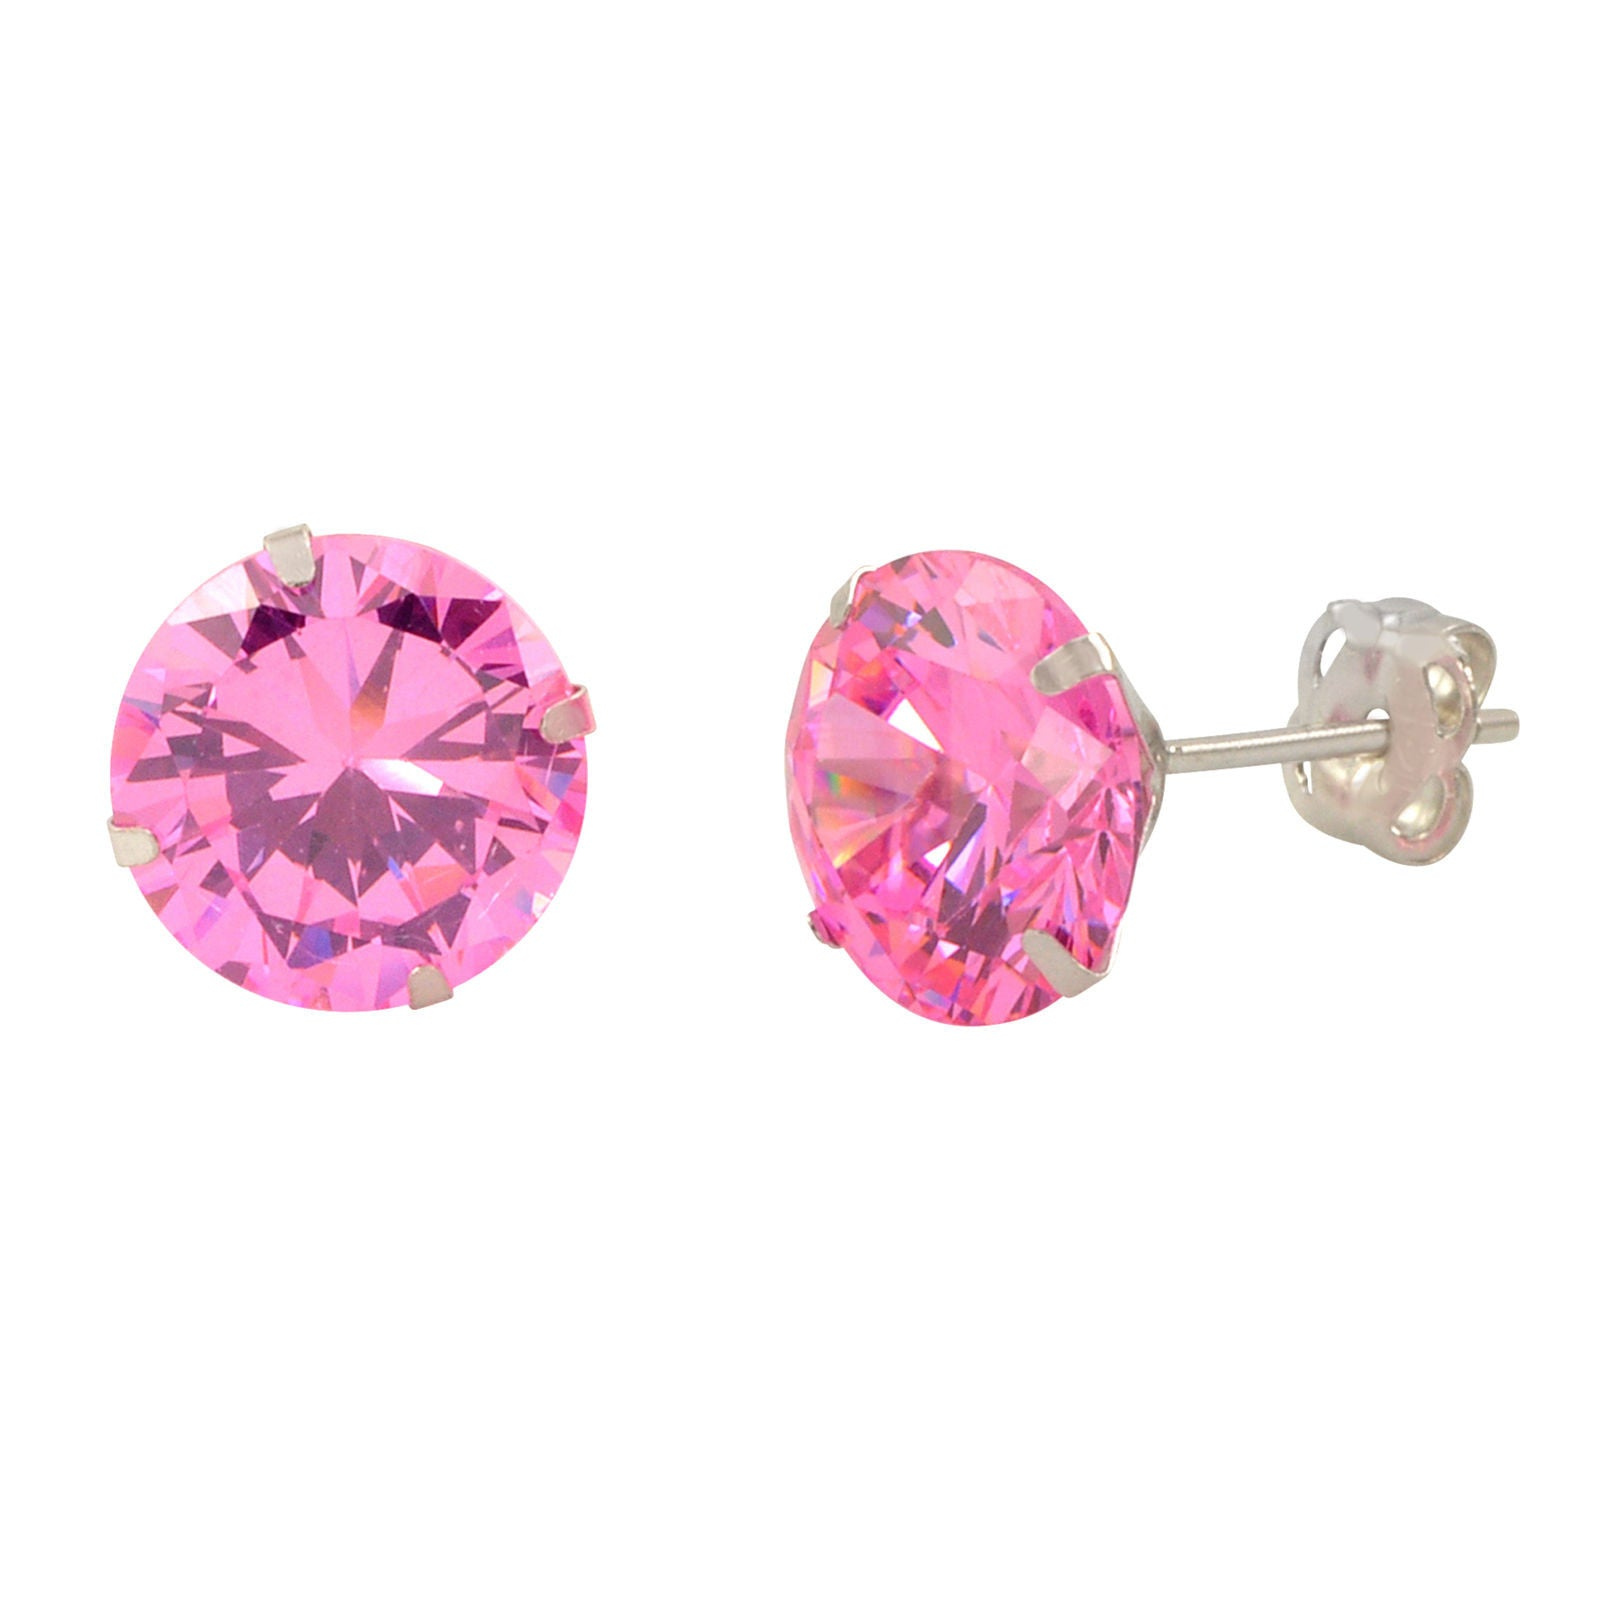 loading ebay gold itm in aaa tourmaline round yellow is pink earrings stud cut image